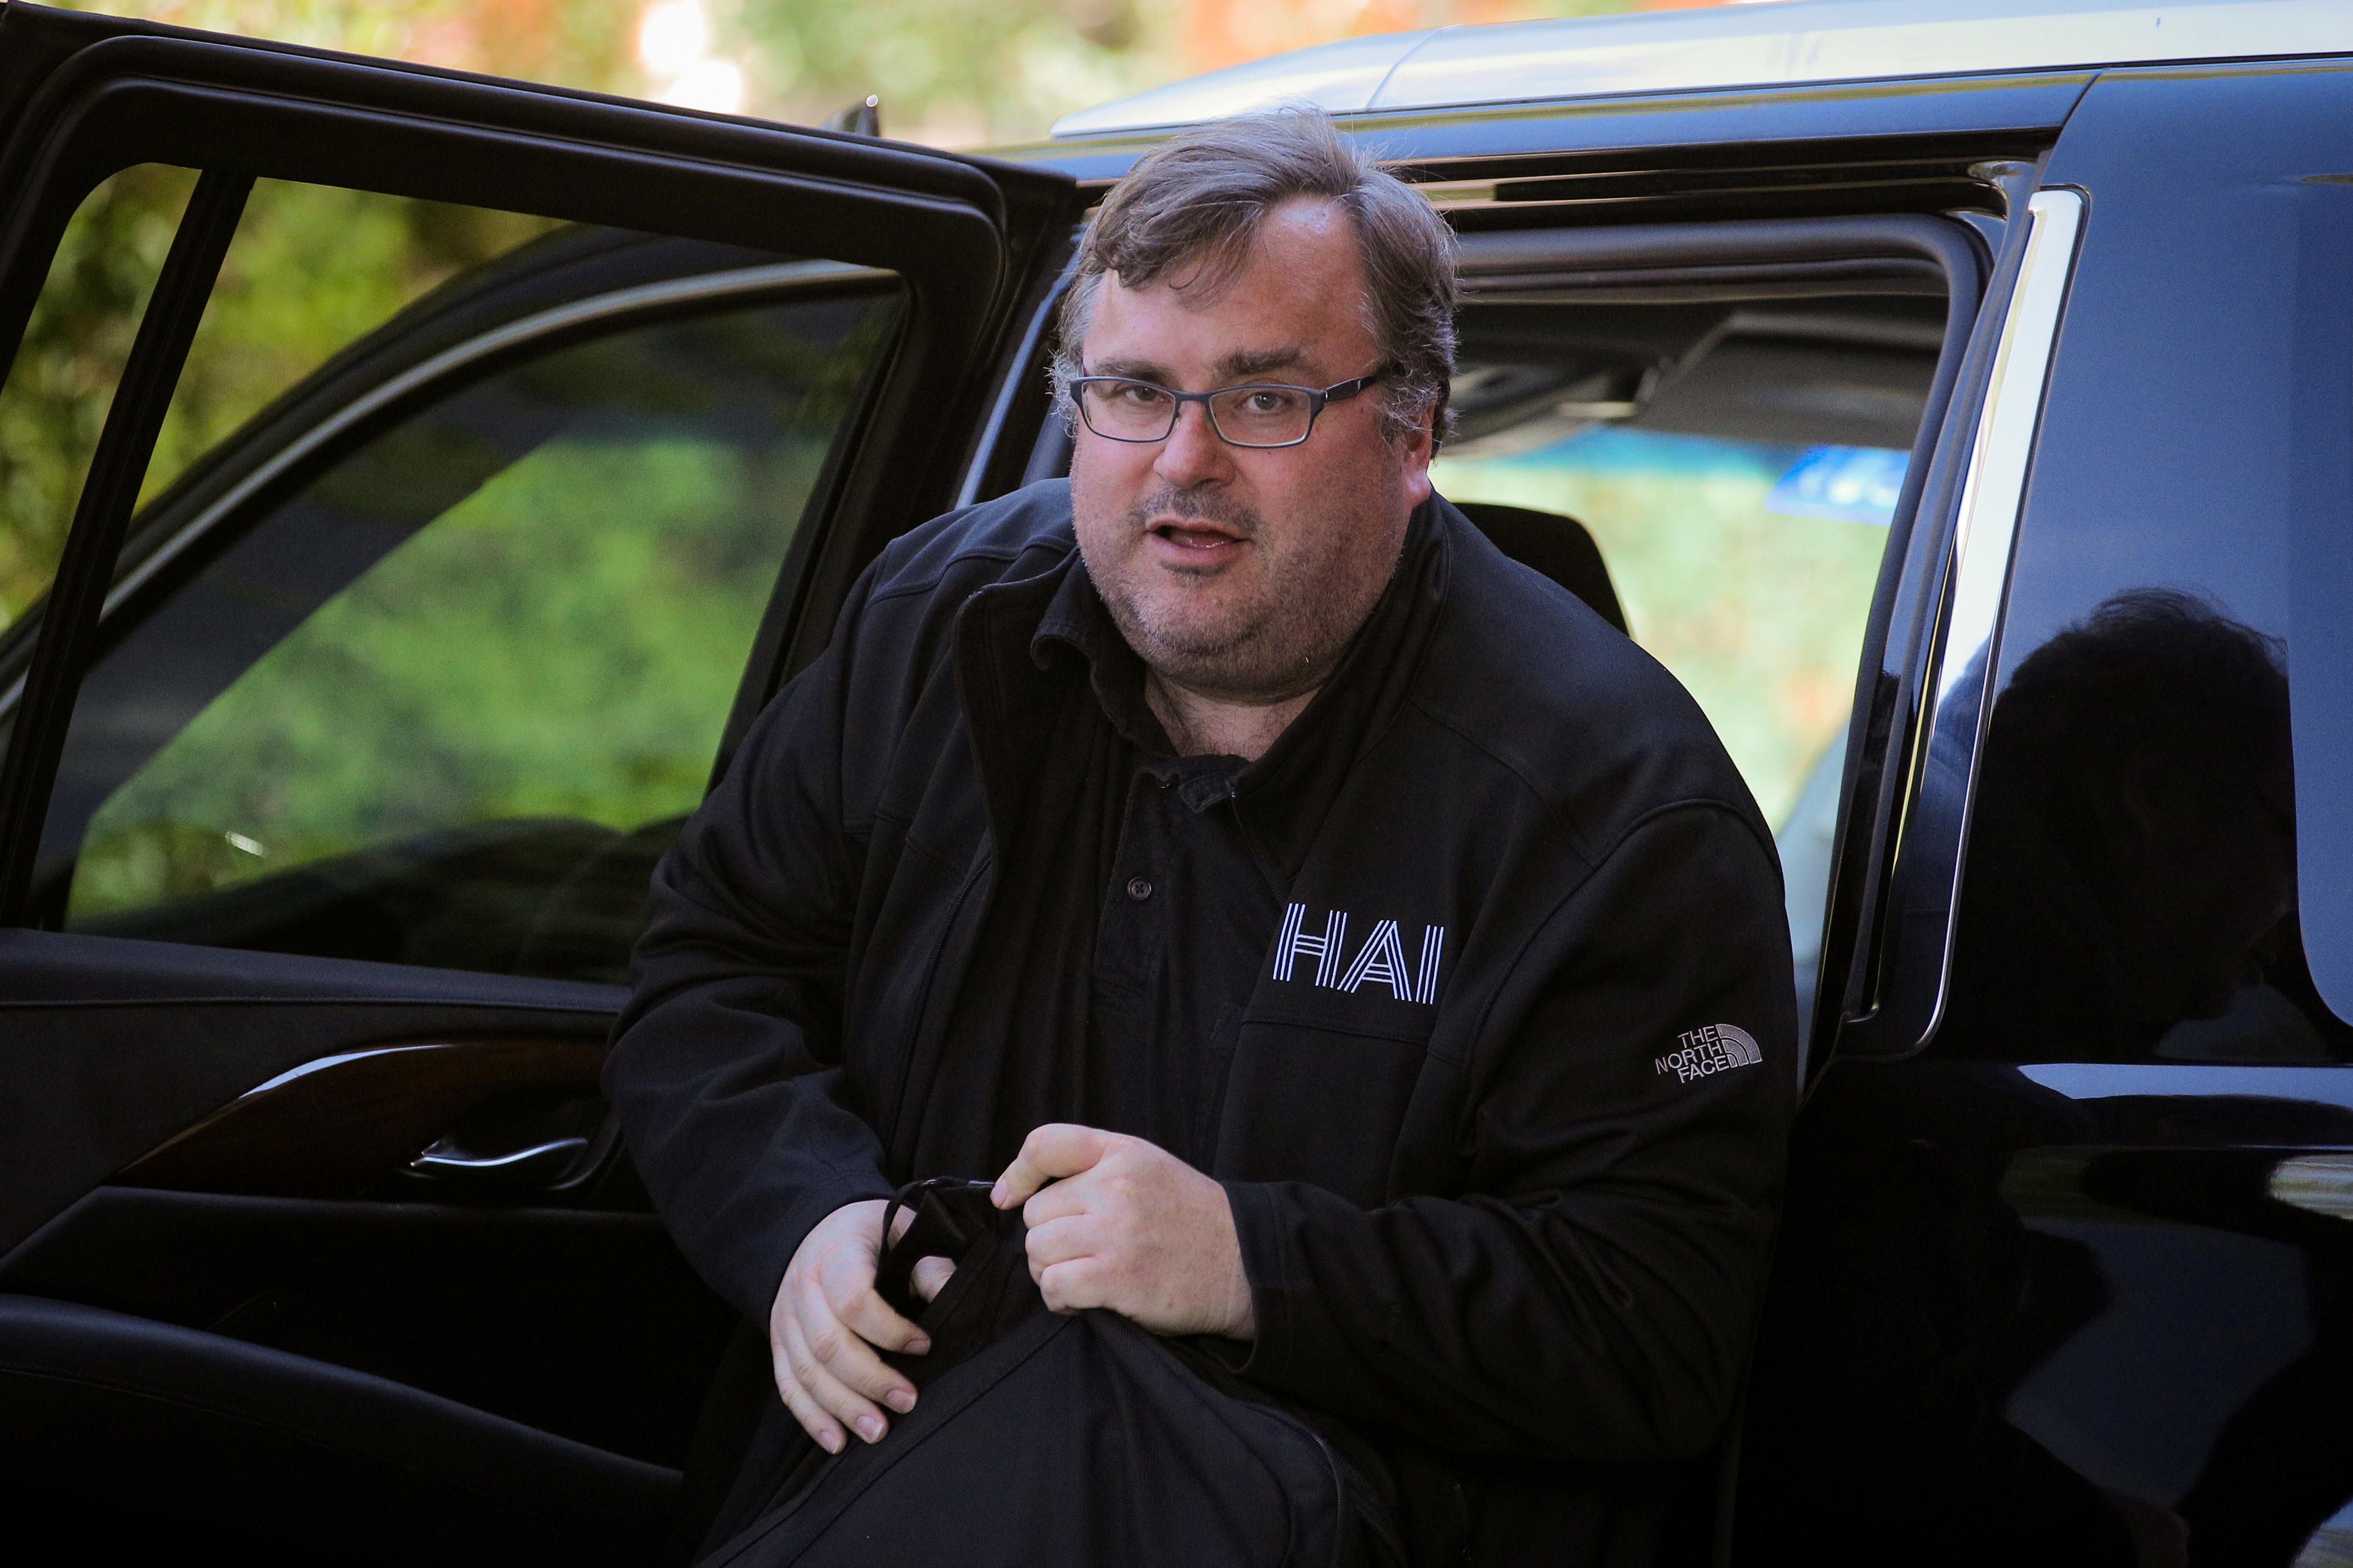 Reid Hoffman, co-founder of Linkedin and venture capitalist, arrives at the annual Allen and Co. Sun Valley media conference in Sun Valley, Idaho, U.S., July 9, 2019. REUTERS/Brendan McDermid